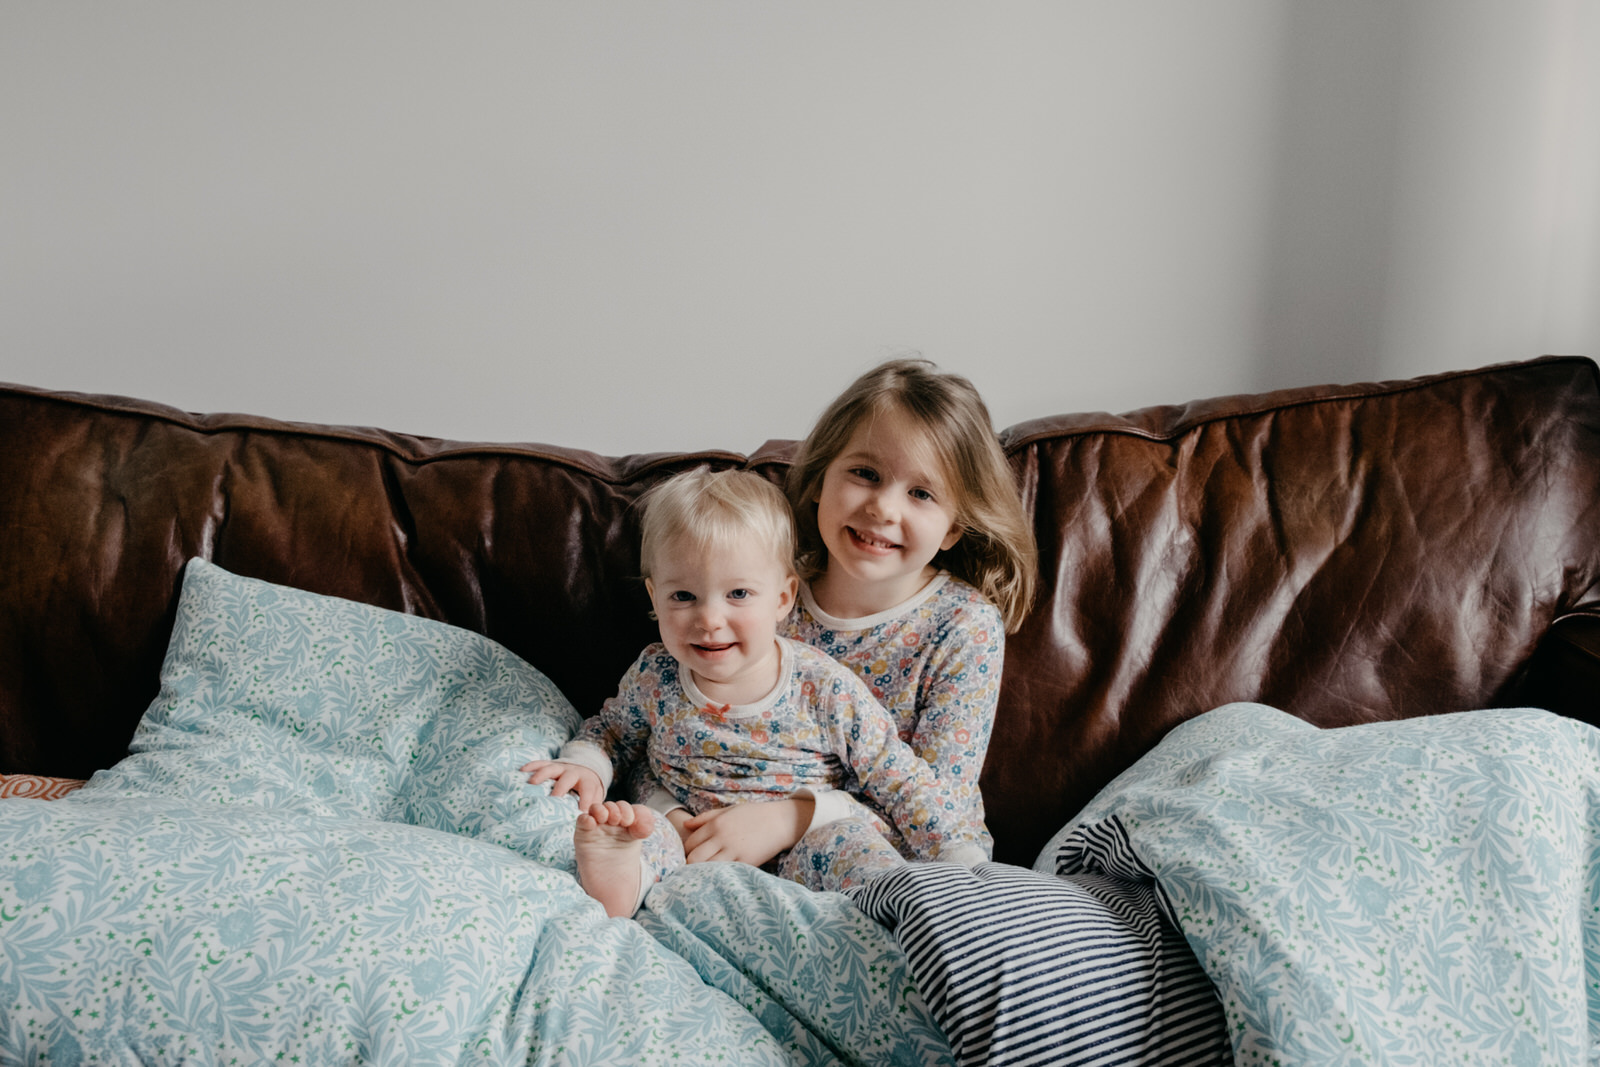 sisters in matching pyjamas sitting on couch smiling at camera